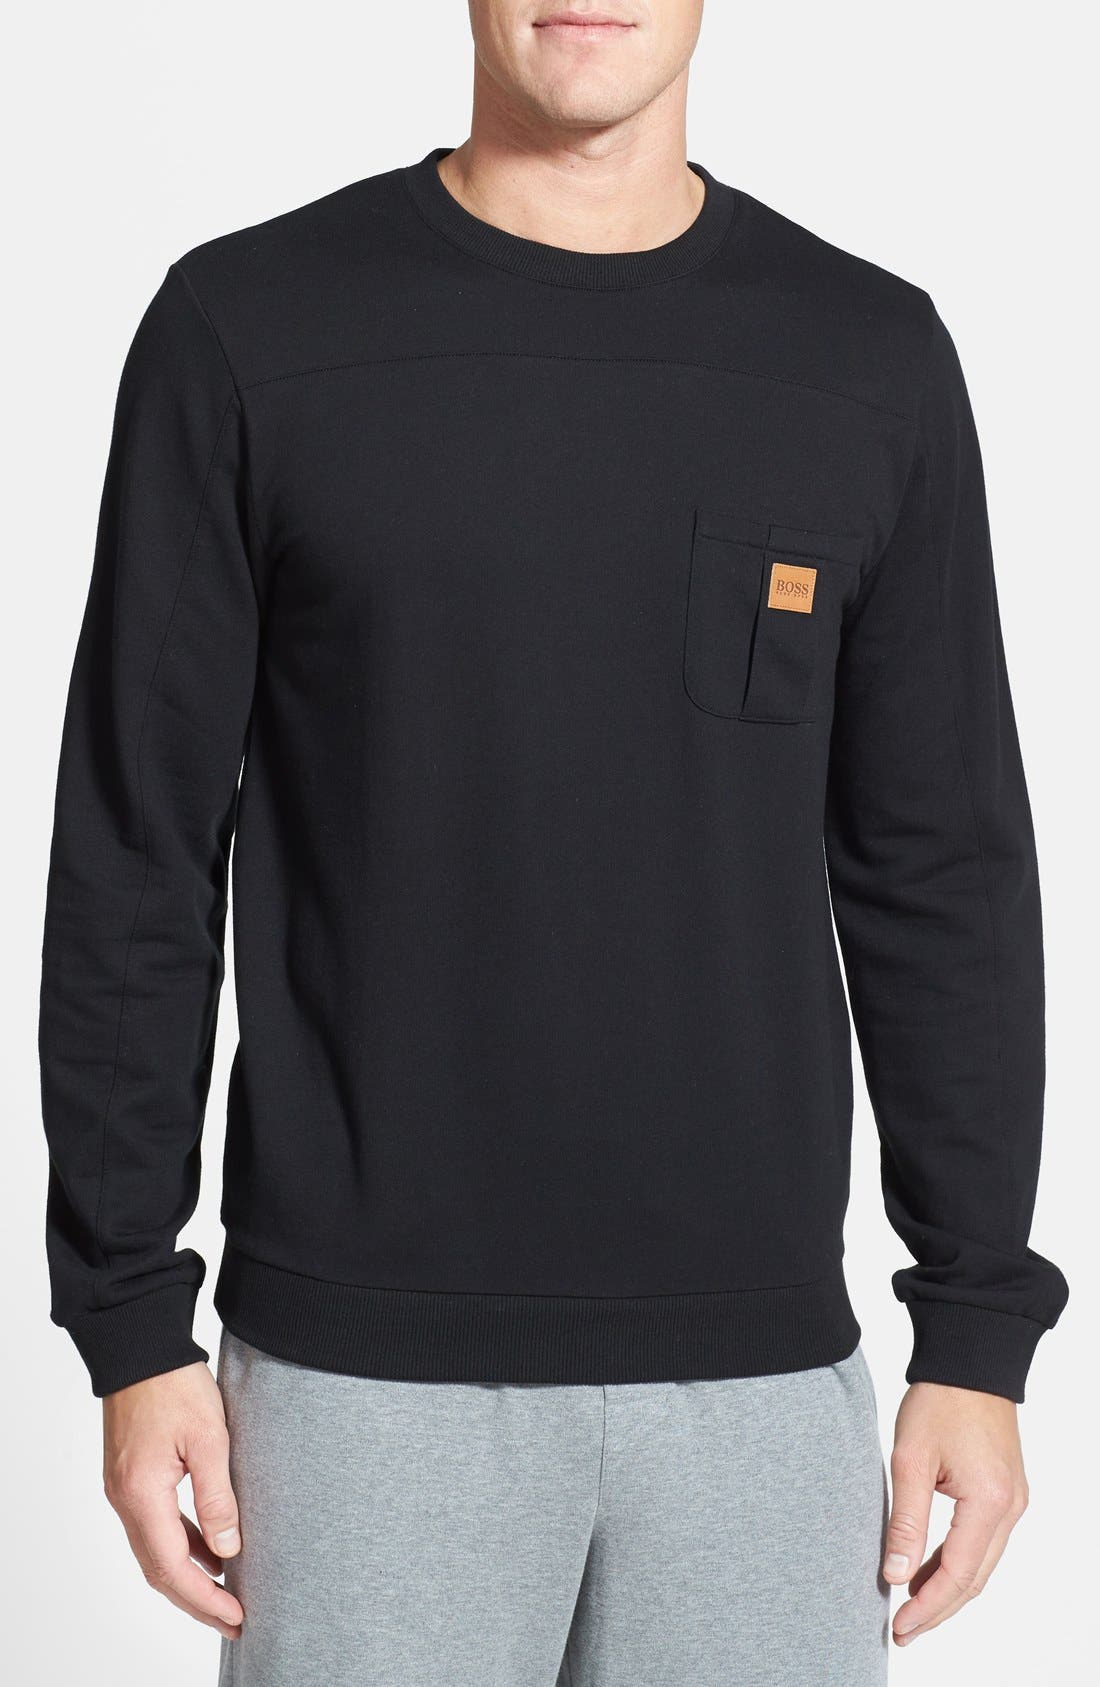 Alternate Image 1 Selected - BOSS HUGO BOSS 'Innovation 6' Sweatshirt